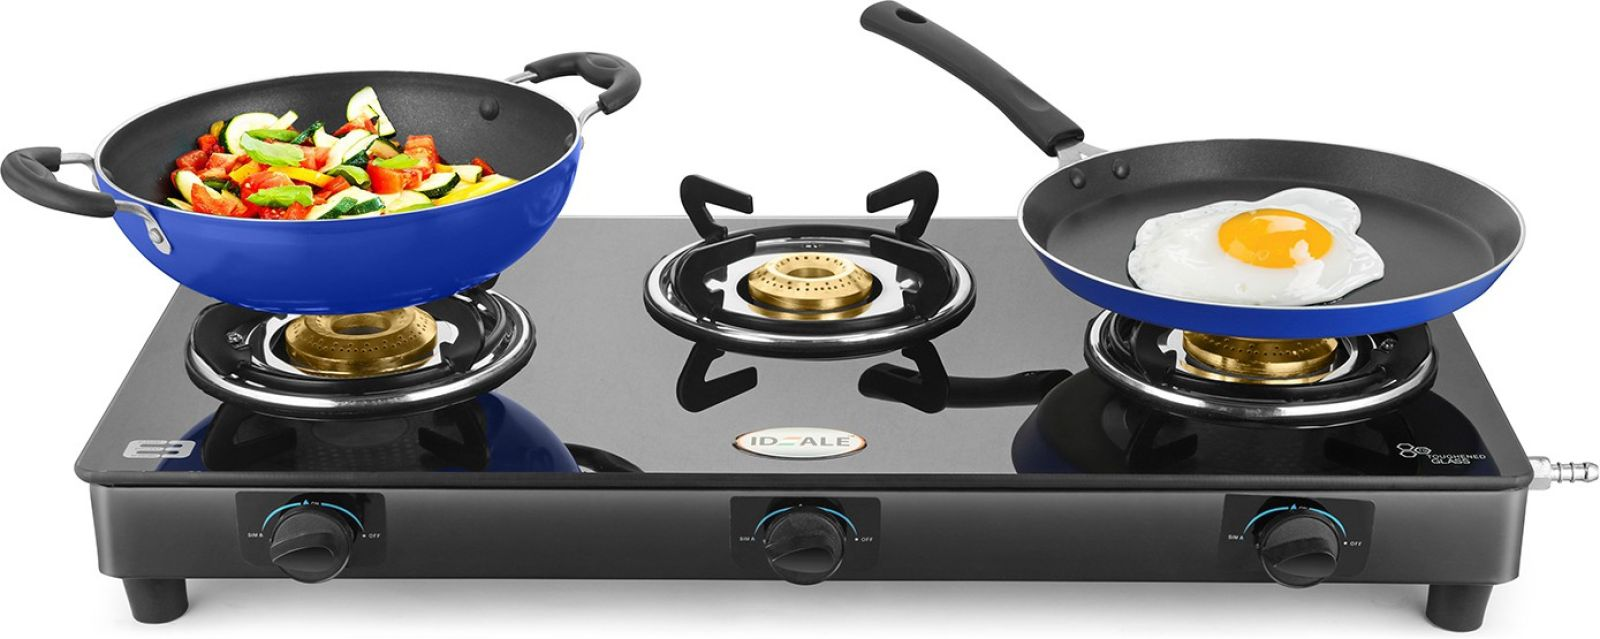 Loot Ideale Gas Stove 3 burners just @Rs 1899 only